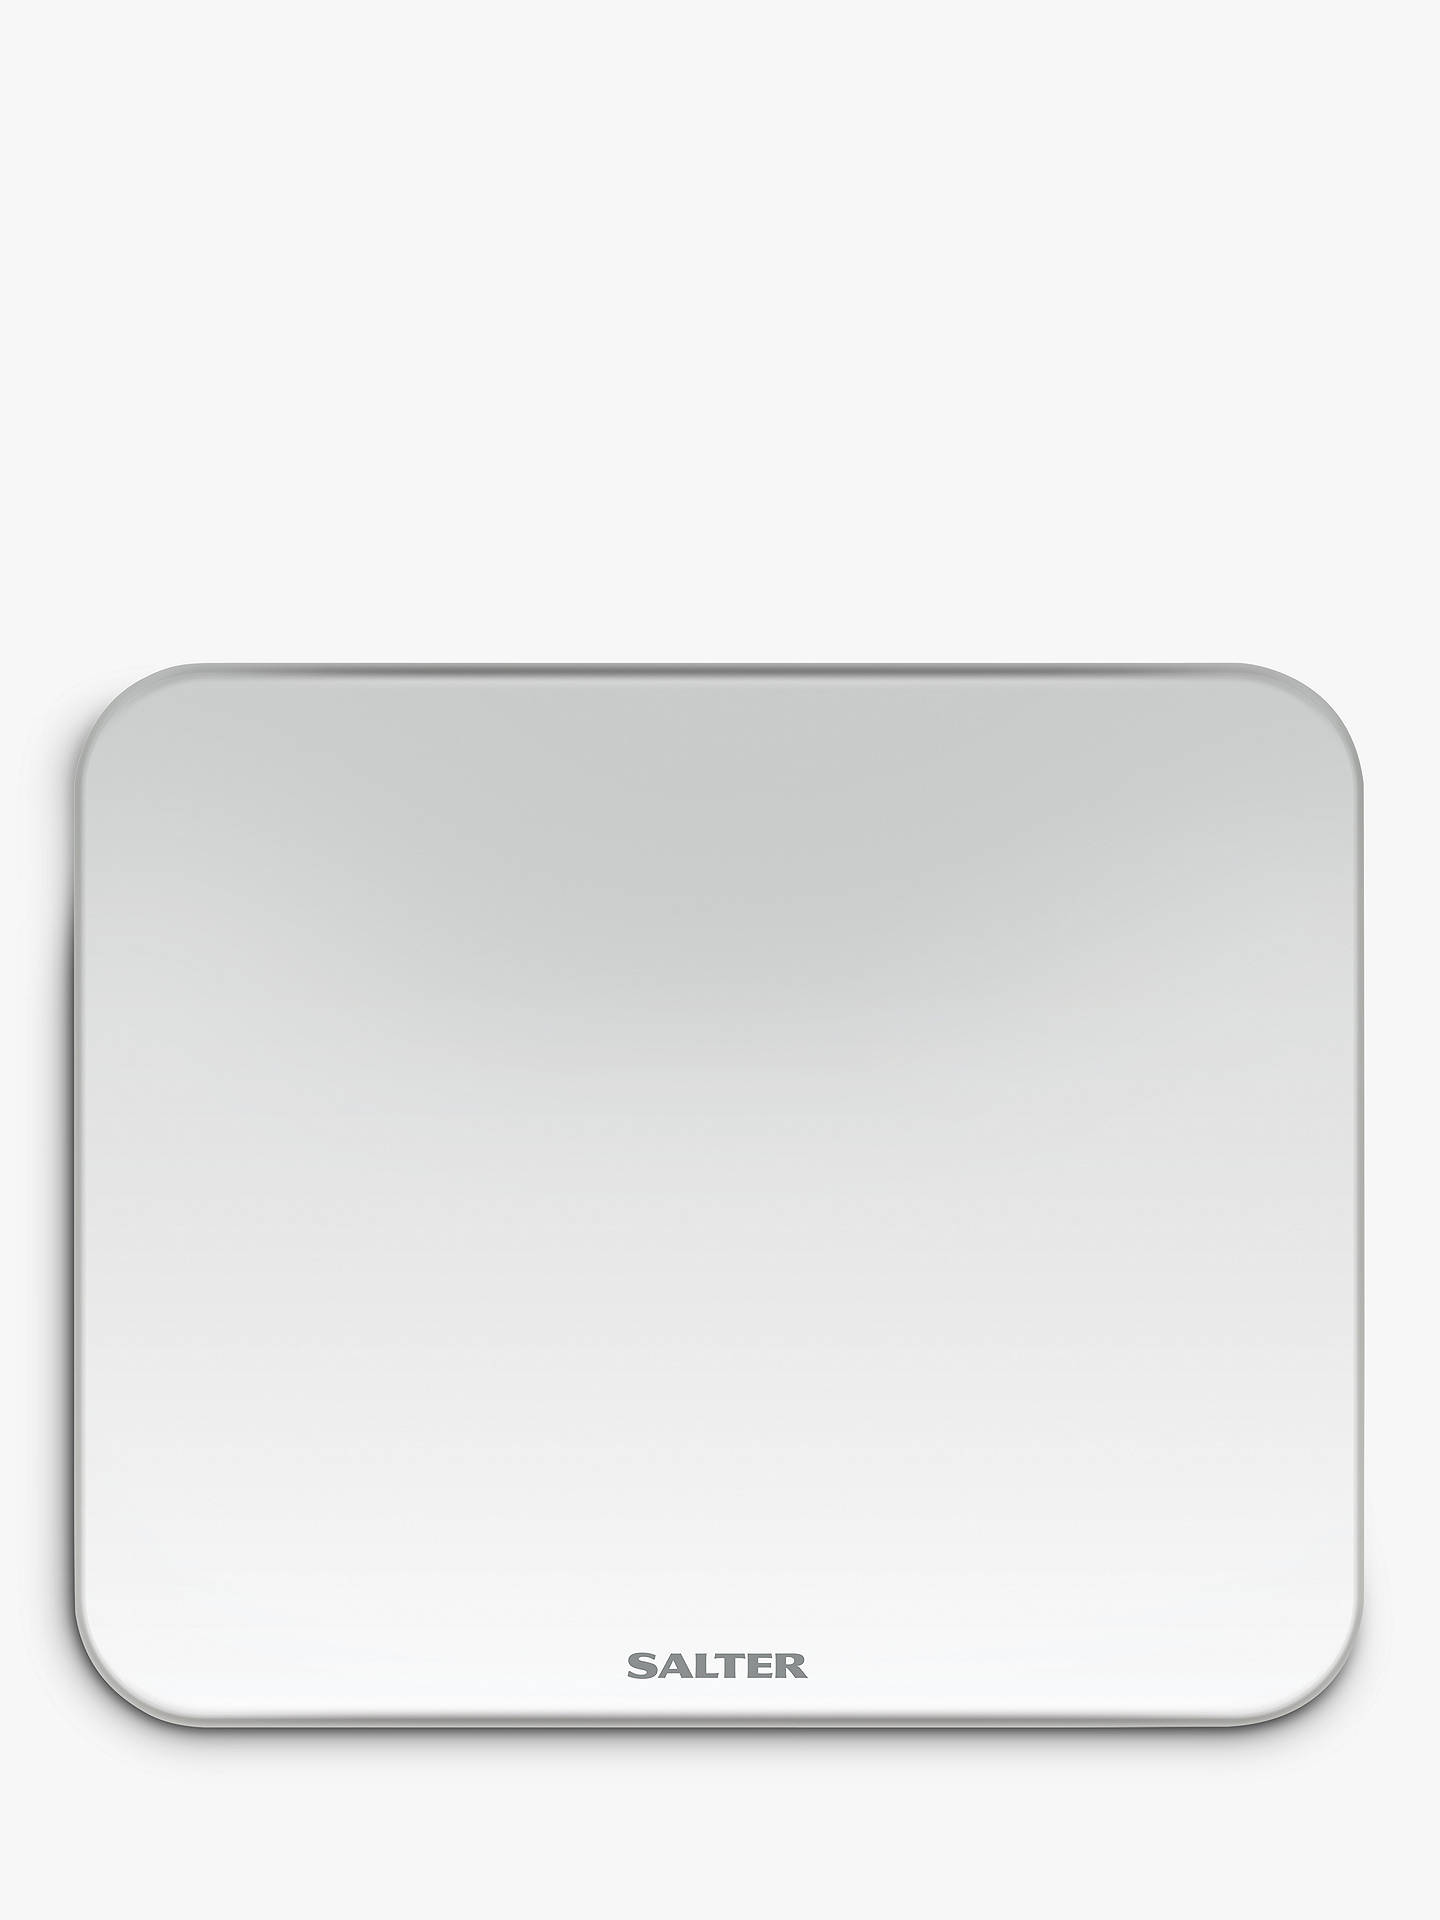 Salter 9204 Ghost Led Bathroom Scale White Online At Johnlewis